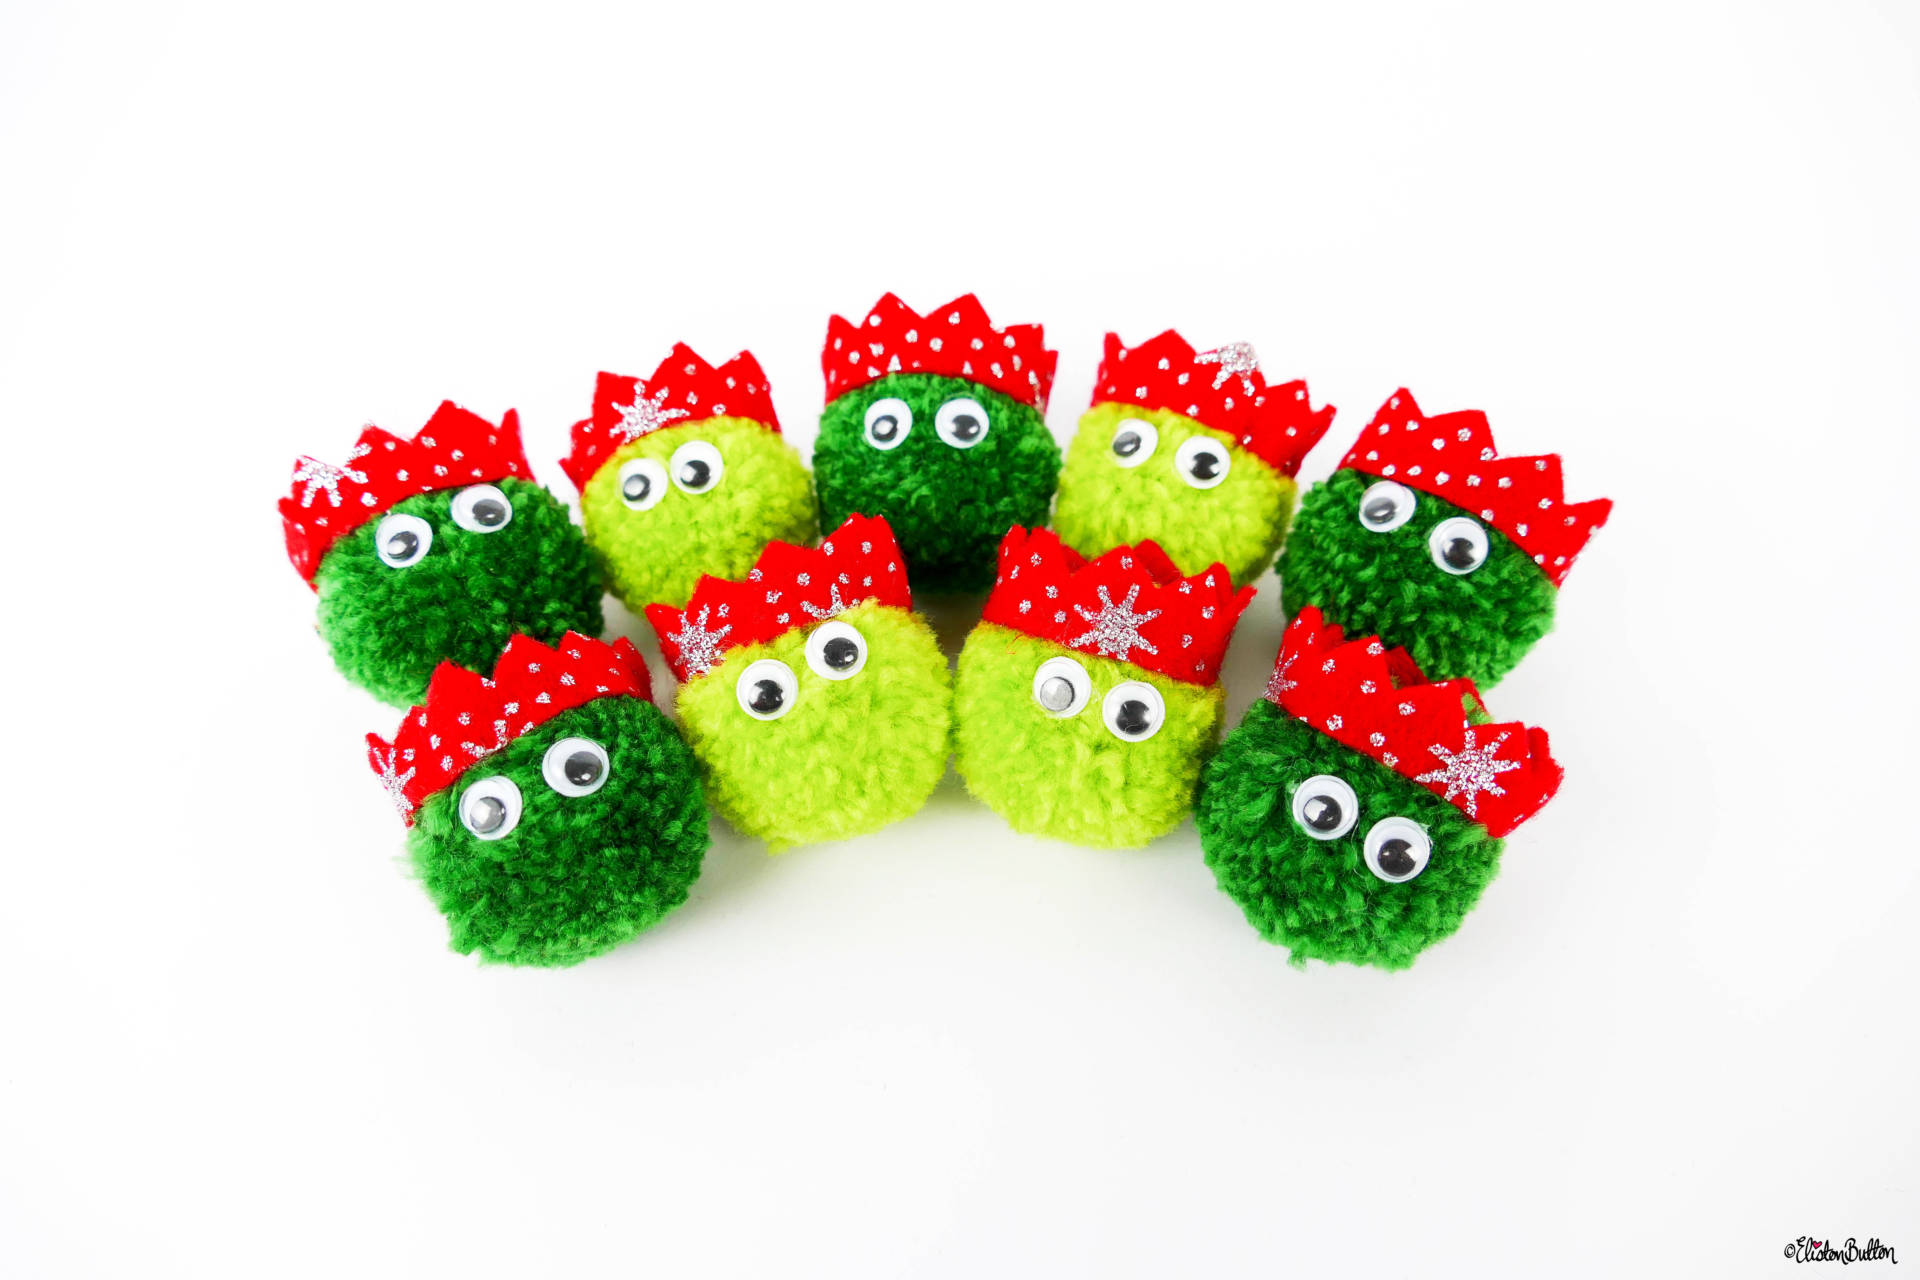 A Flock of Dark and Light Green Christmas Sprout Pom Pom Brooches with Red Glitter Party Hats by Eliston Button - Christmas Sprout Pom Pom Brooches! at www.elistonbutton.com - Eliston Button - That Crafty Kid – Art, Design, Craft & Adventure.